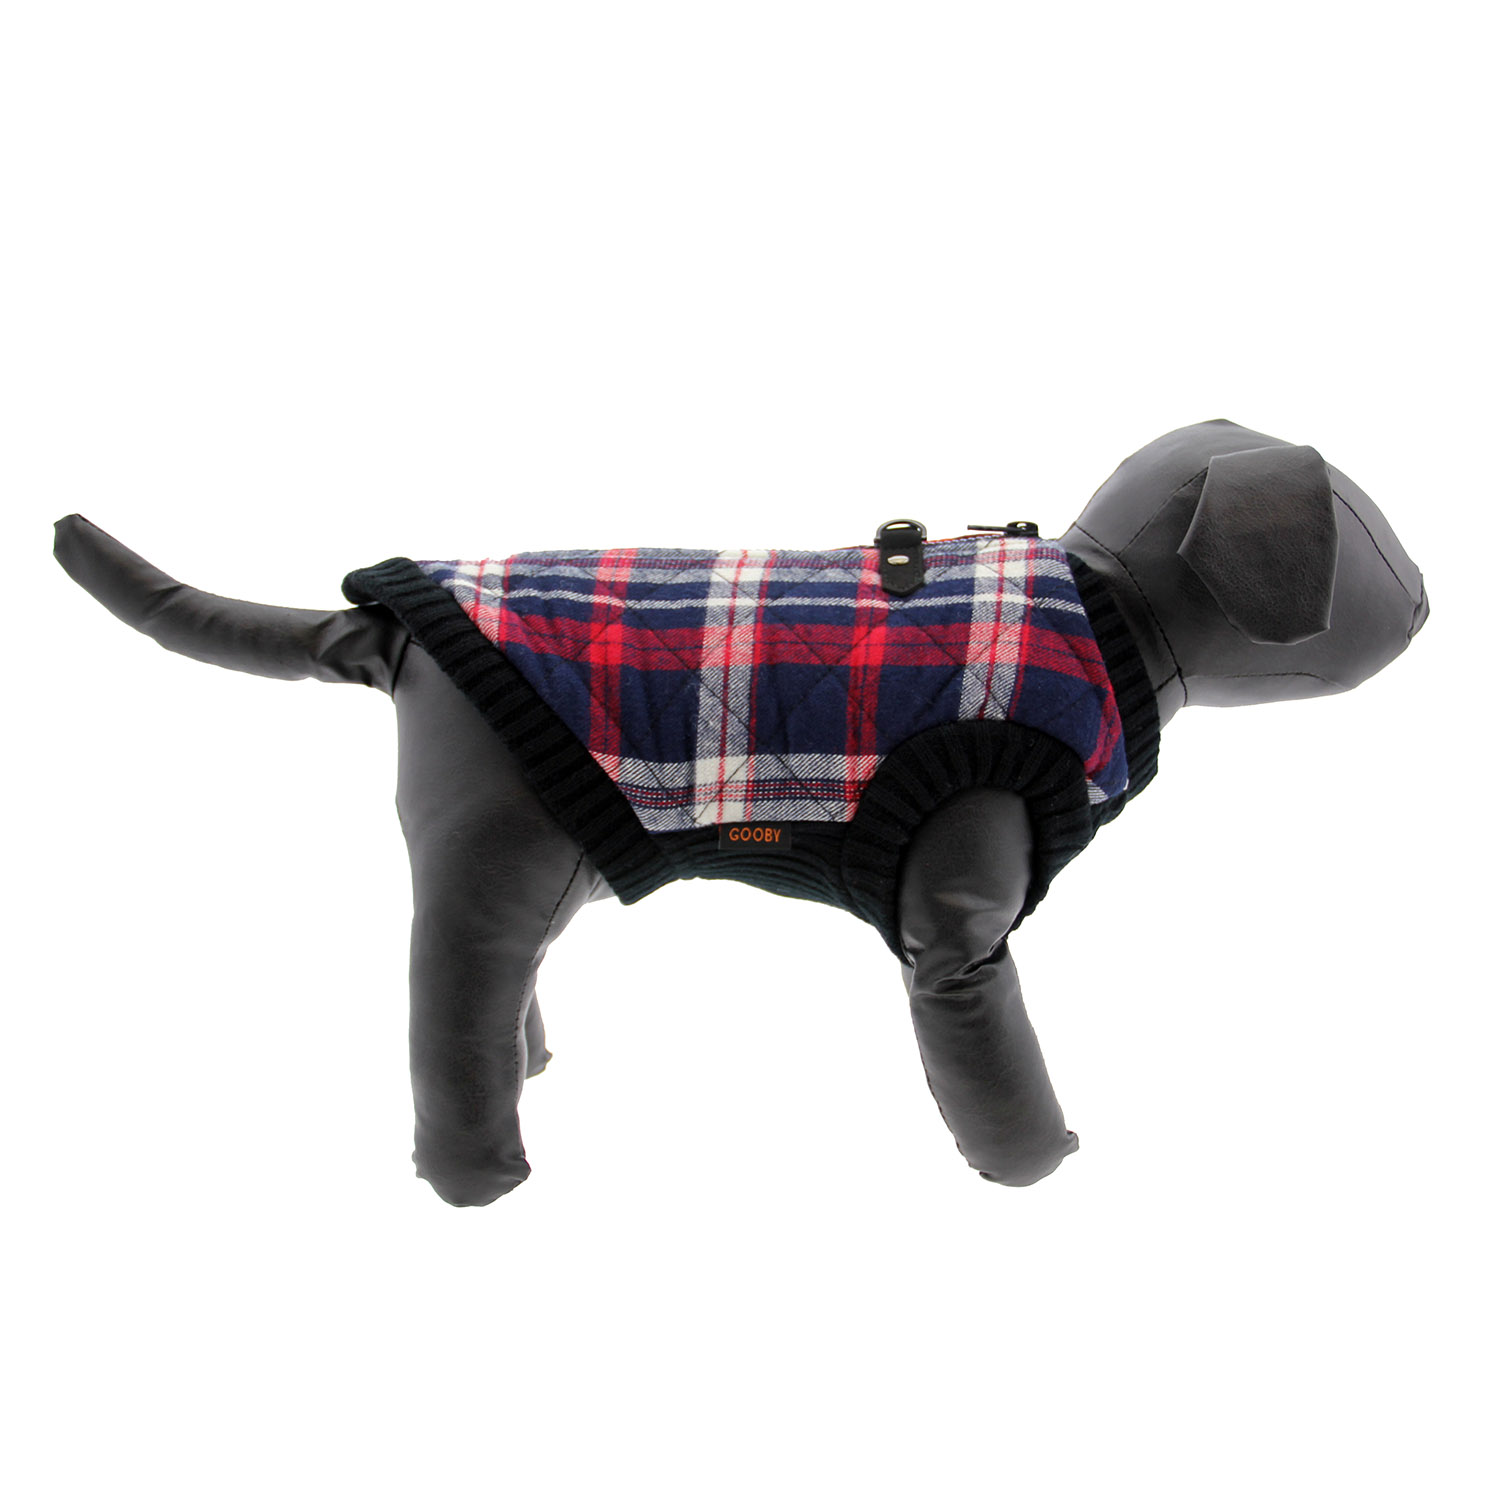 Fashion Bomber Check Dog Vest by Gooby - White